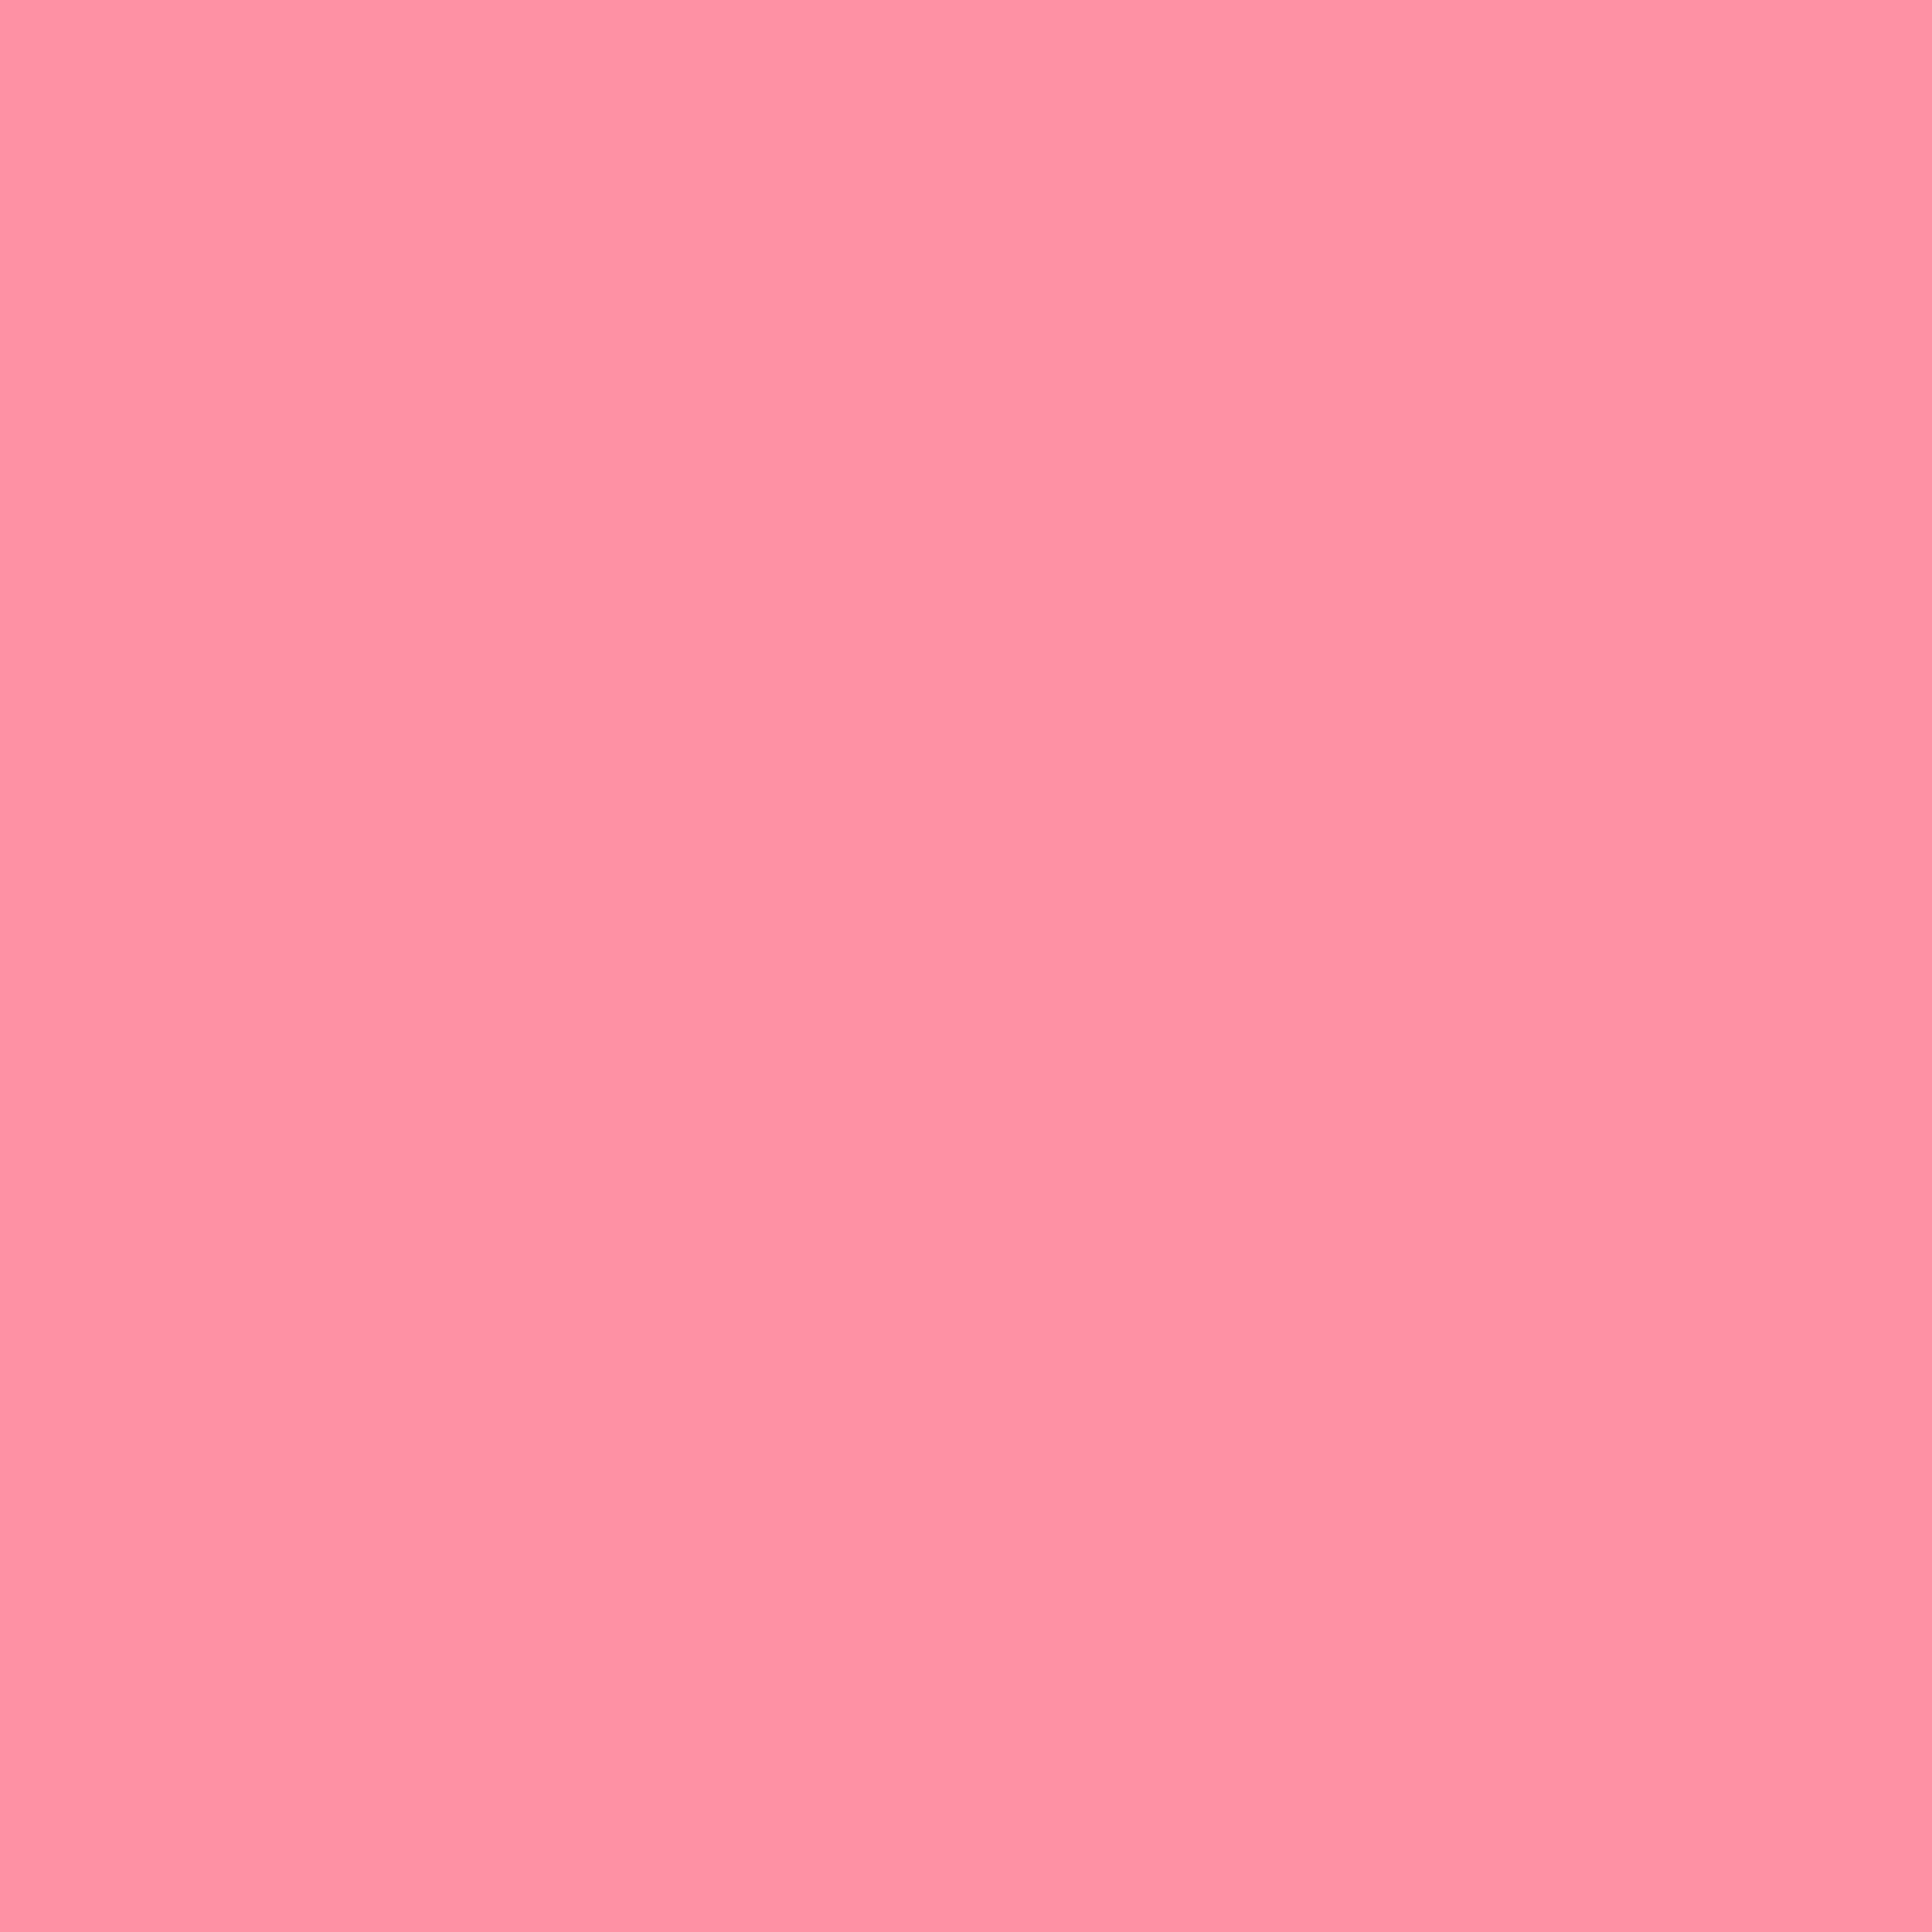 2732x2732 Salmon Pink Solid Color Background